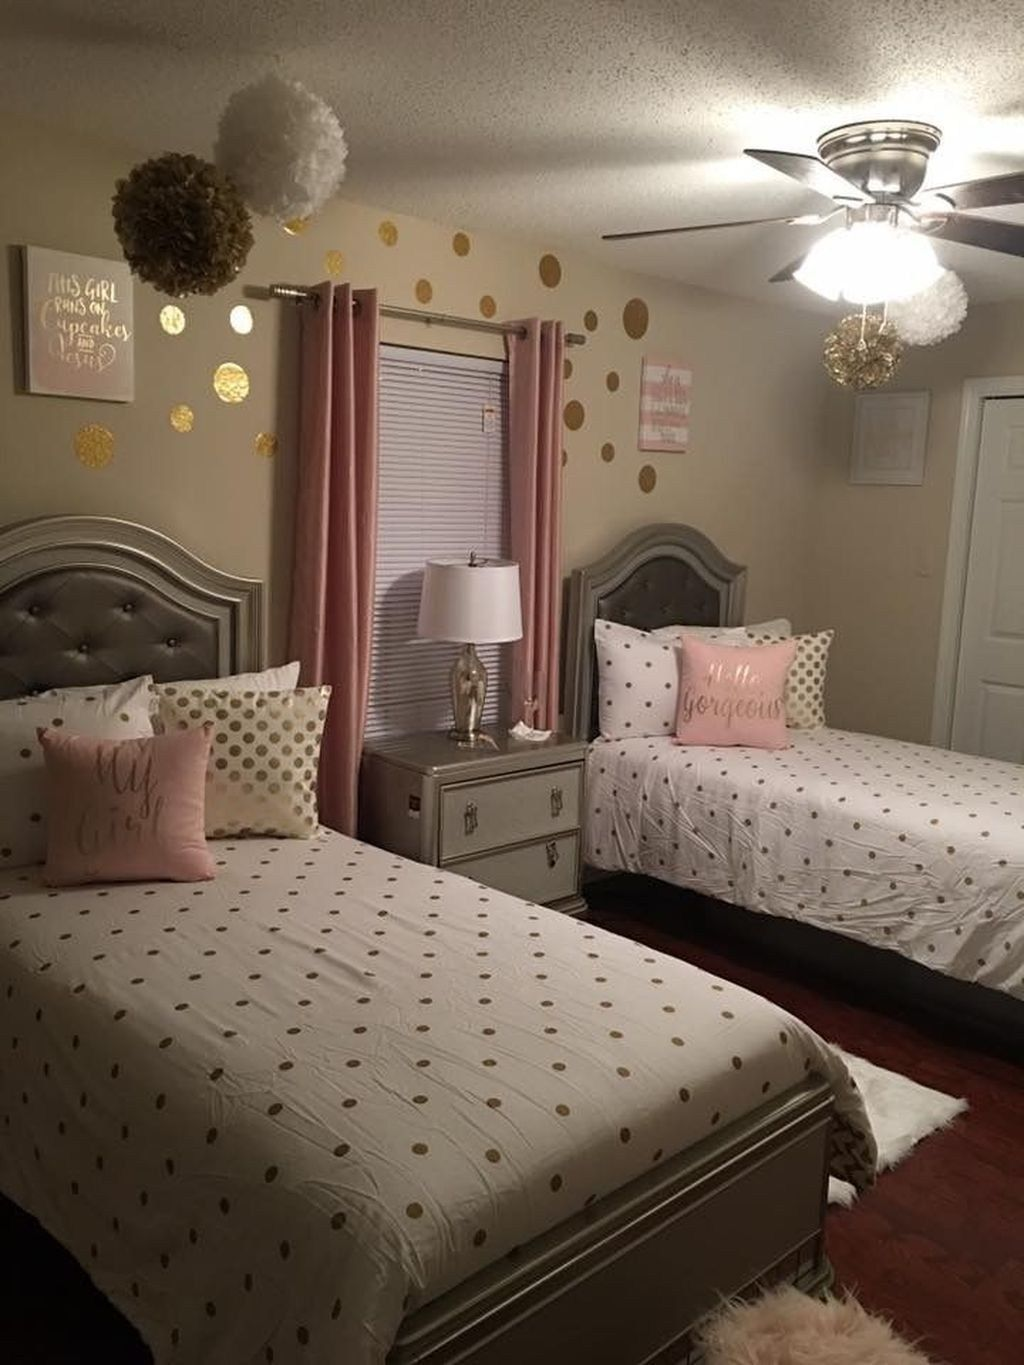 27 Girls Room Decor Ideas To Change The Feel Of The Room In 2020 Shared Girls Bedroom Twin Girl Bedrooms Shared Girls Room